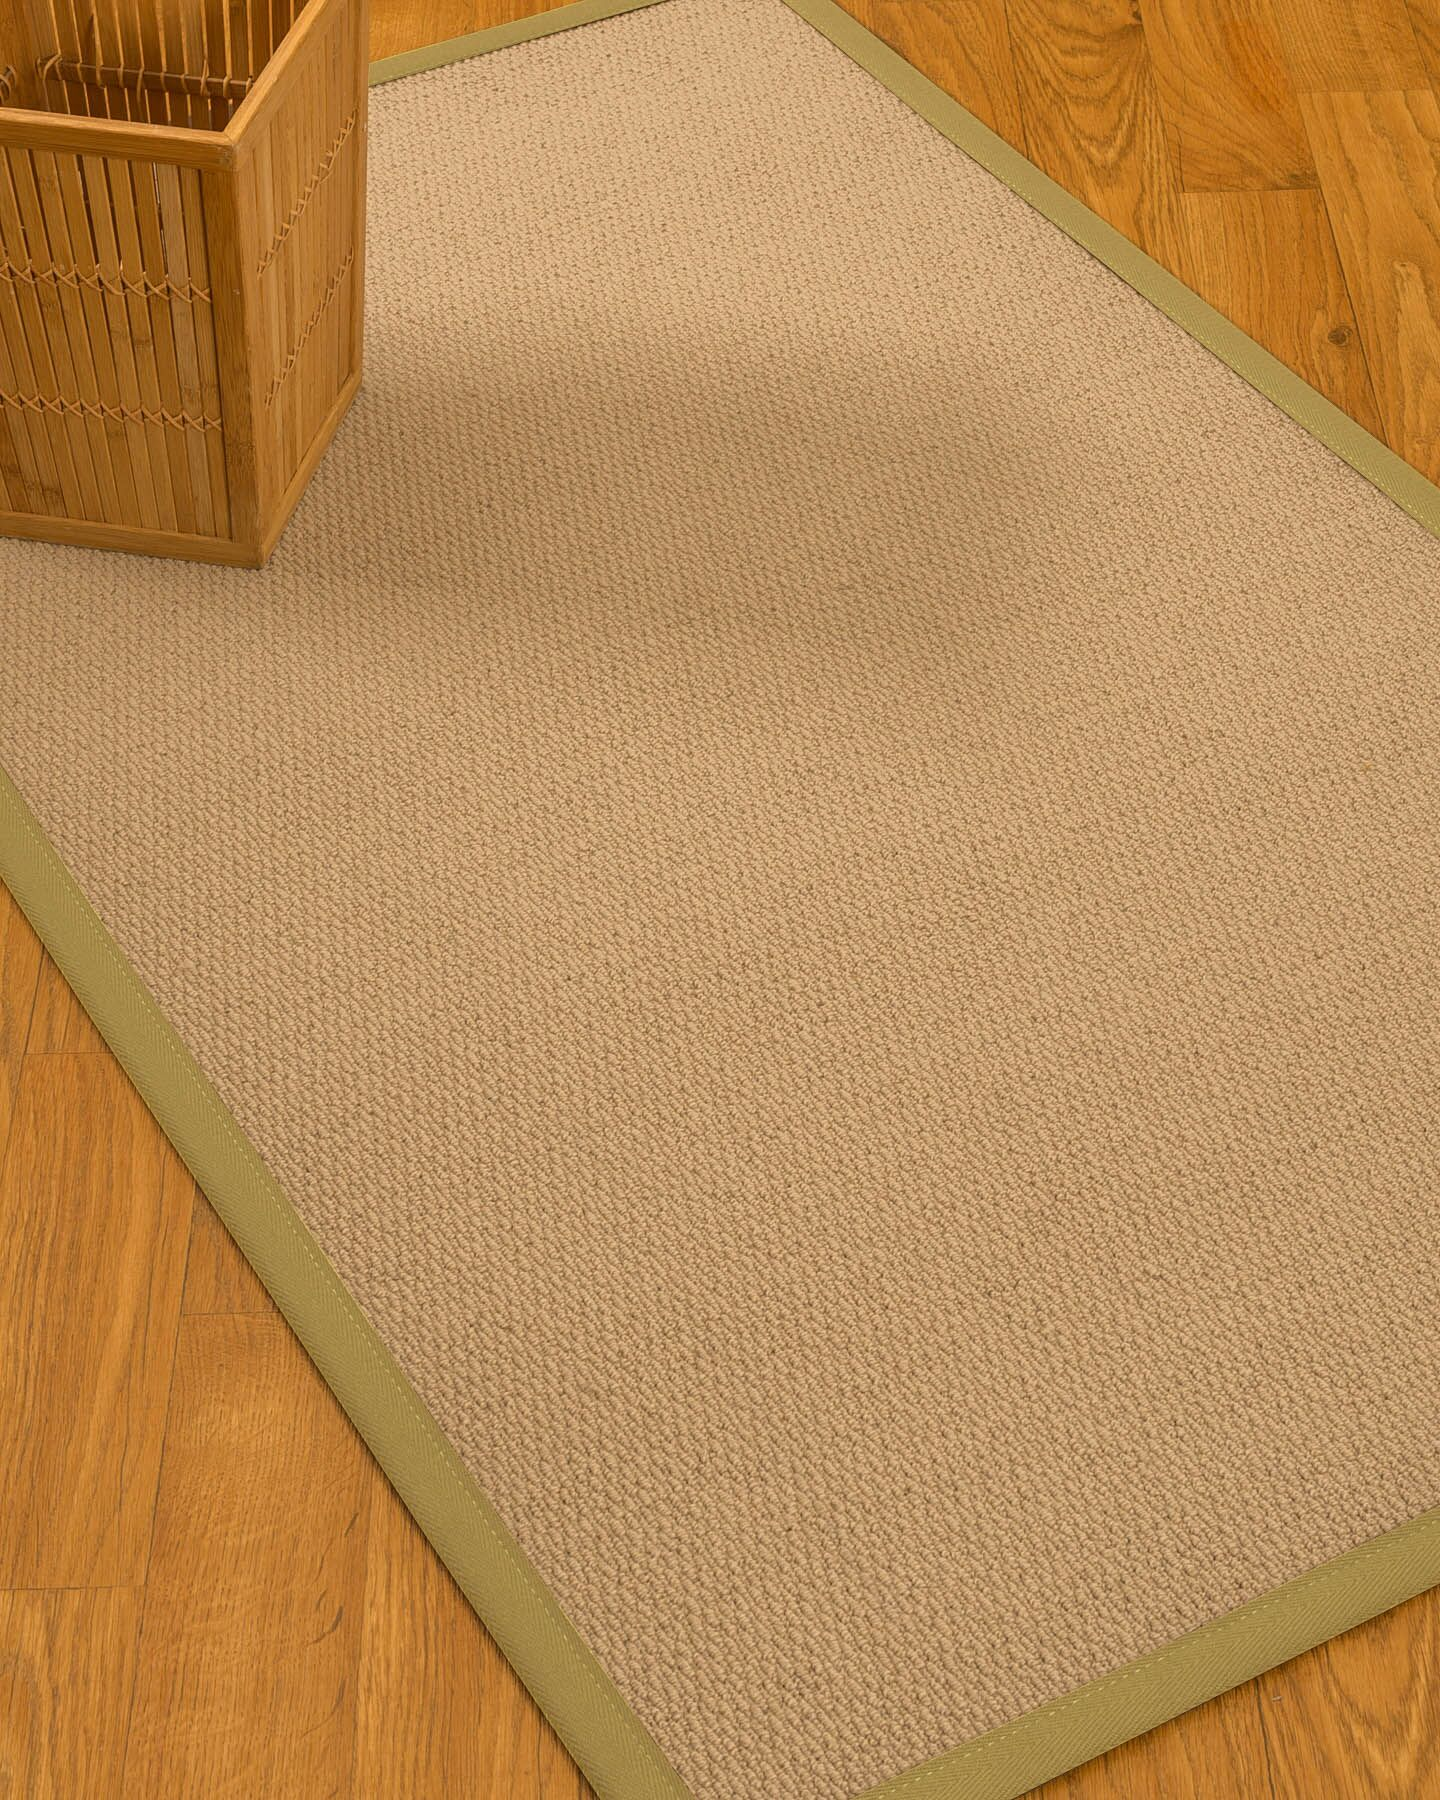 Chea Border Hand-Woven Wool Beige/Khaki Area Rug Rug Size: Rectangle 12' x 15', Rug Pad Included: Yes